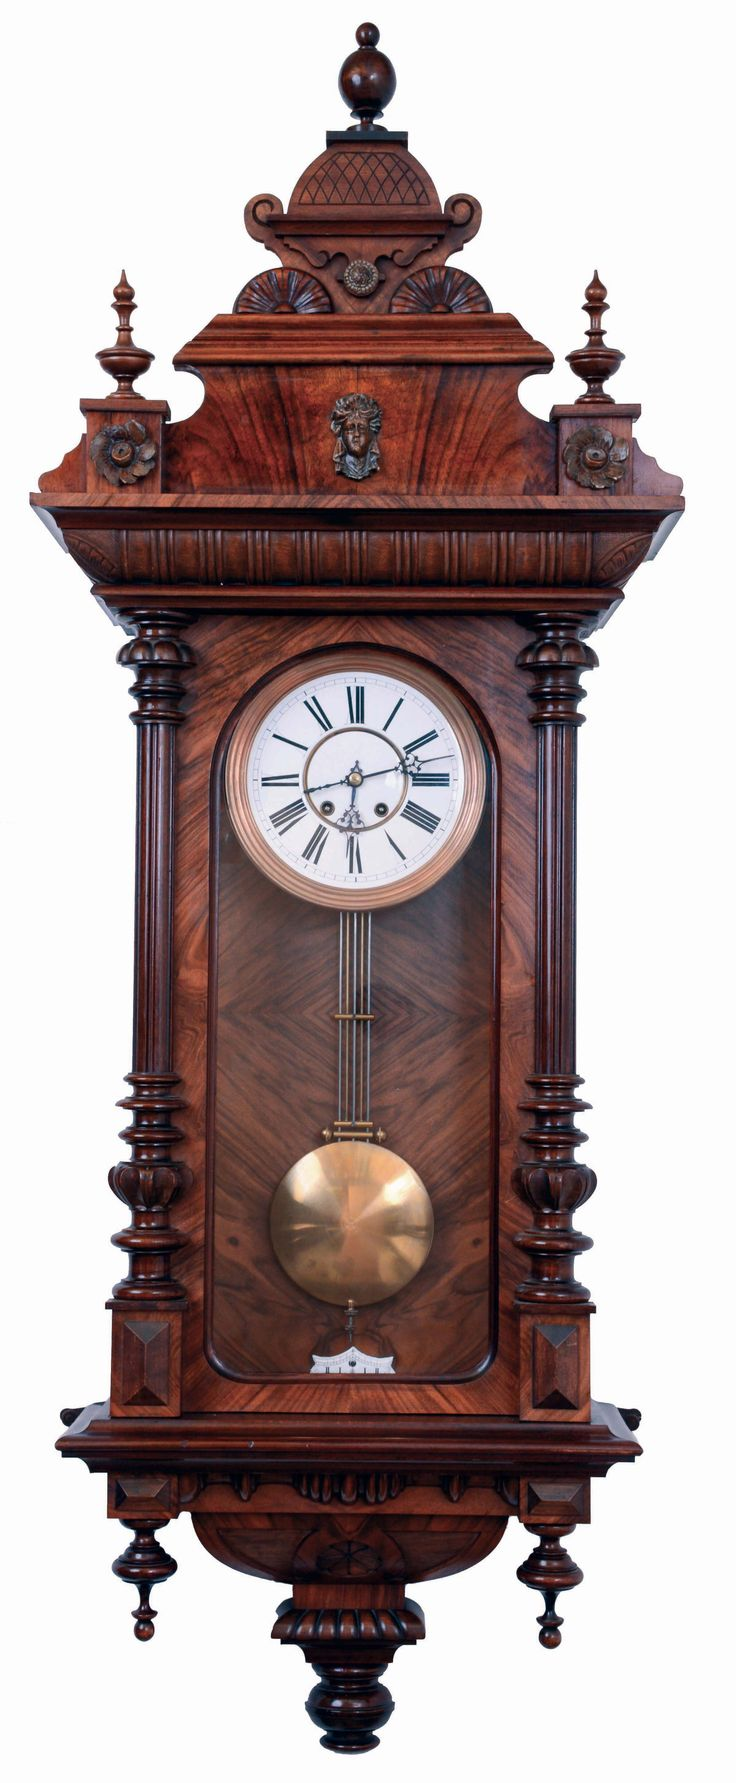 1375 best clocks images on pinterest antique clocks antique watches and grandfather clocks - Coo coo clock pendulum ...